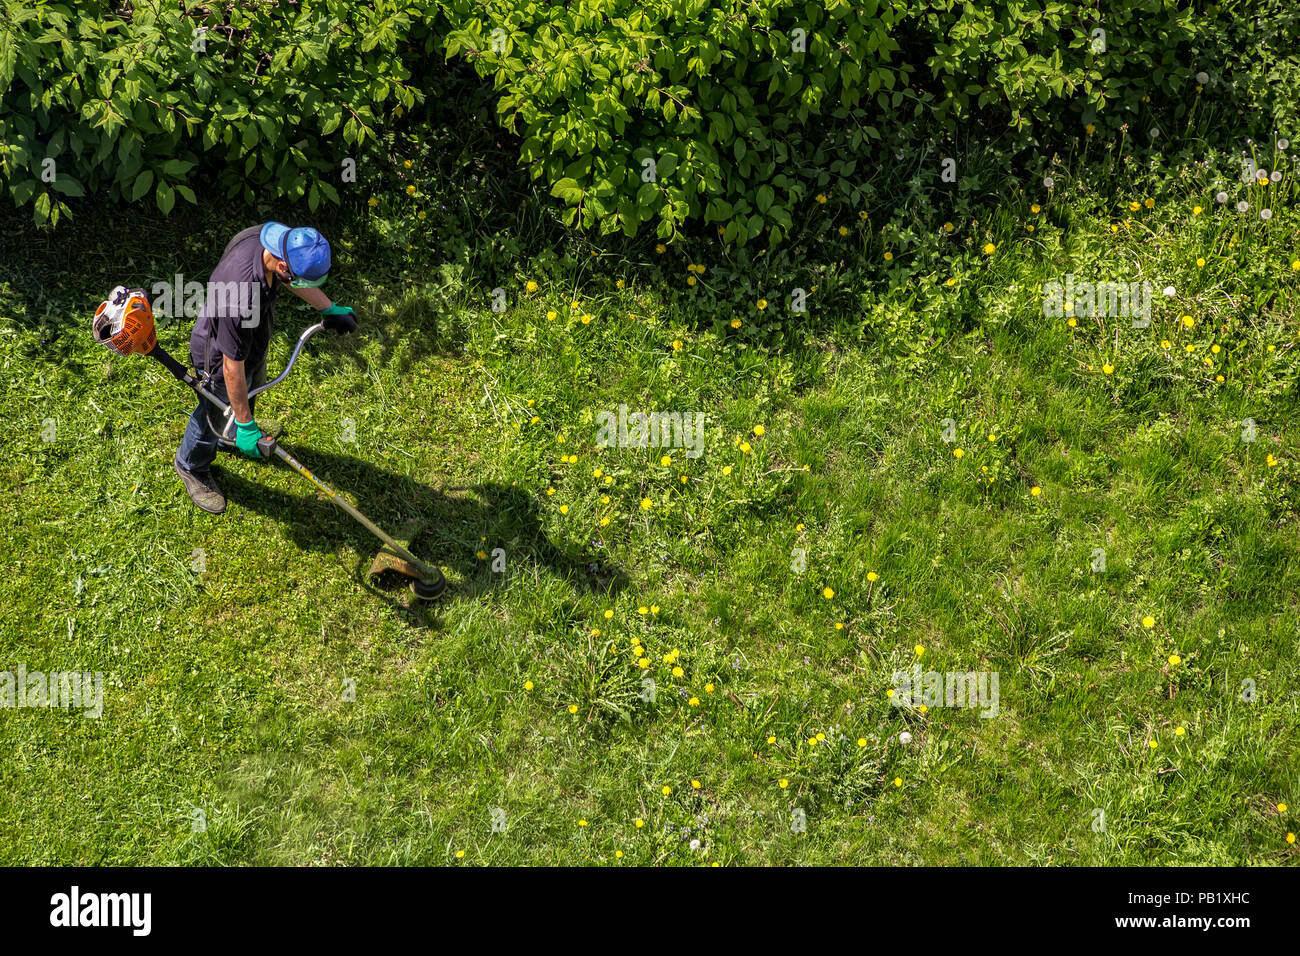 Male worker with power tool string lawn trimmer mower cutting grass, top view - Stock Image